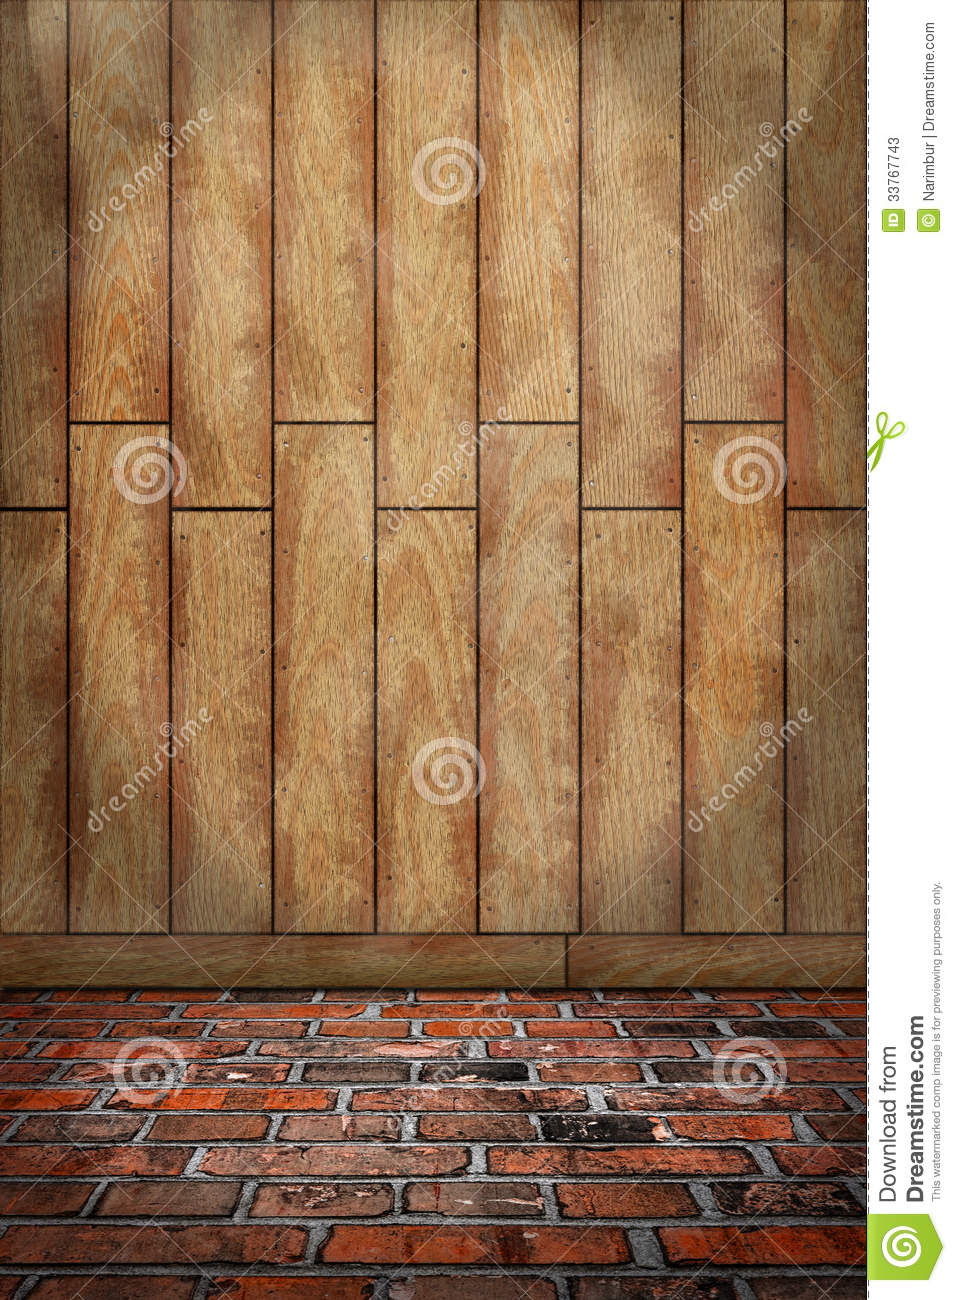 wooden door design photo download  | 944 x 1300